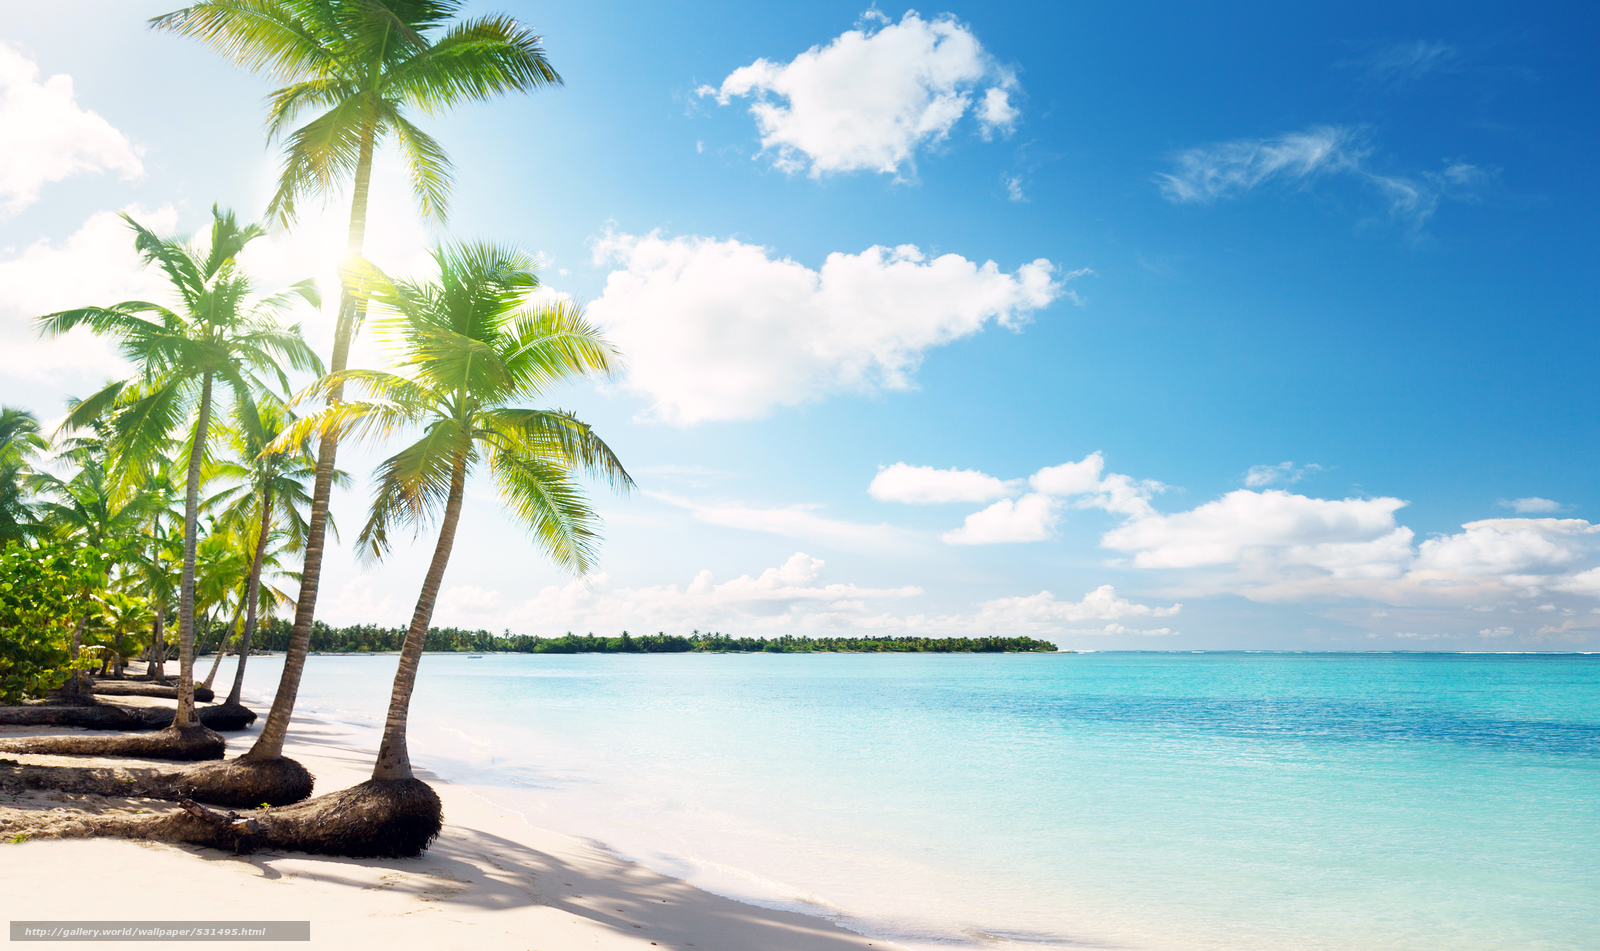 Download wallpaper saribbean, beach, palm trees free ...